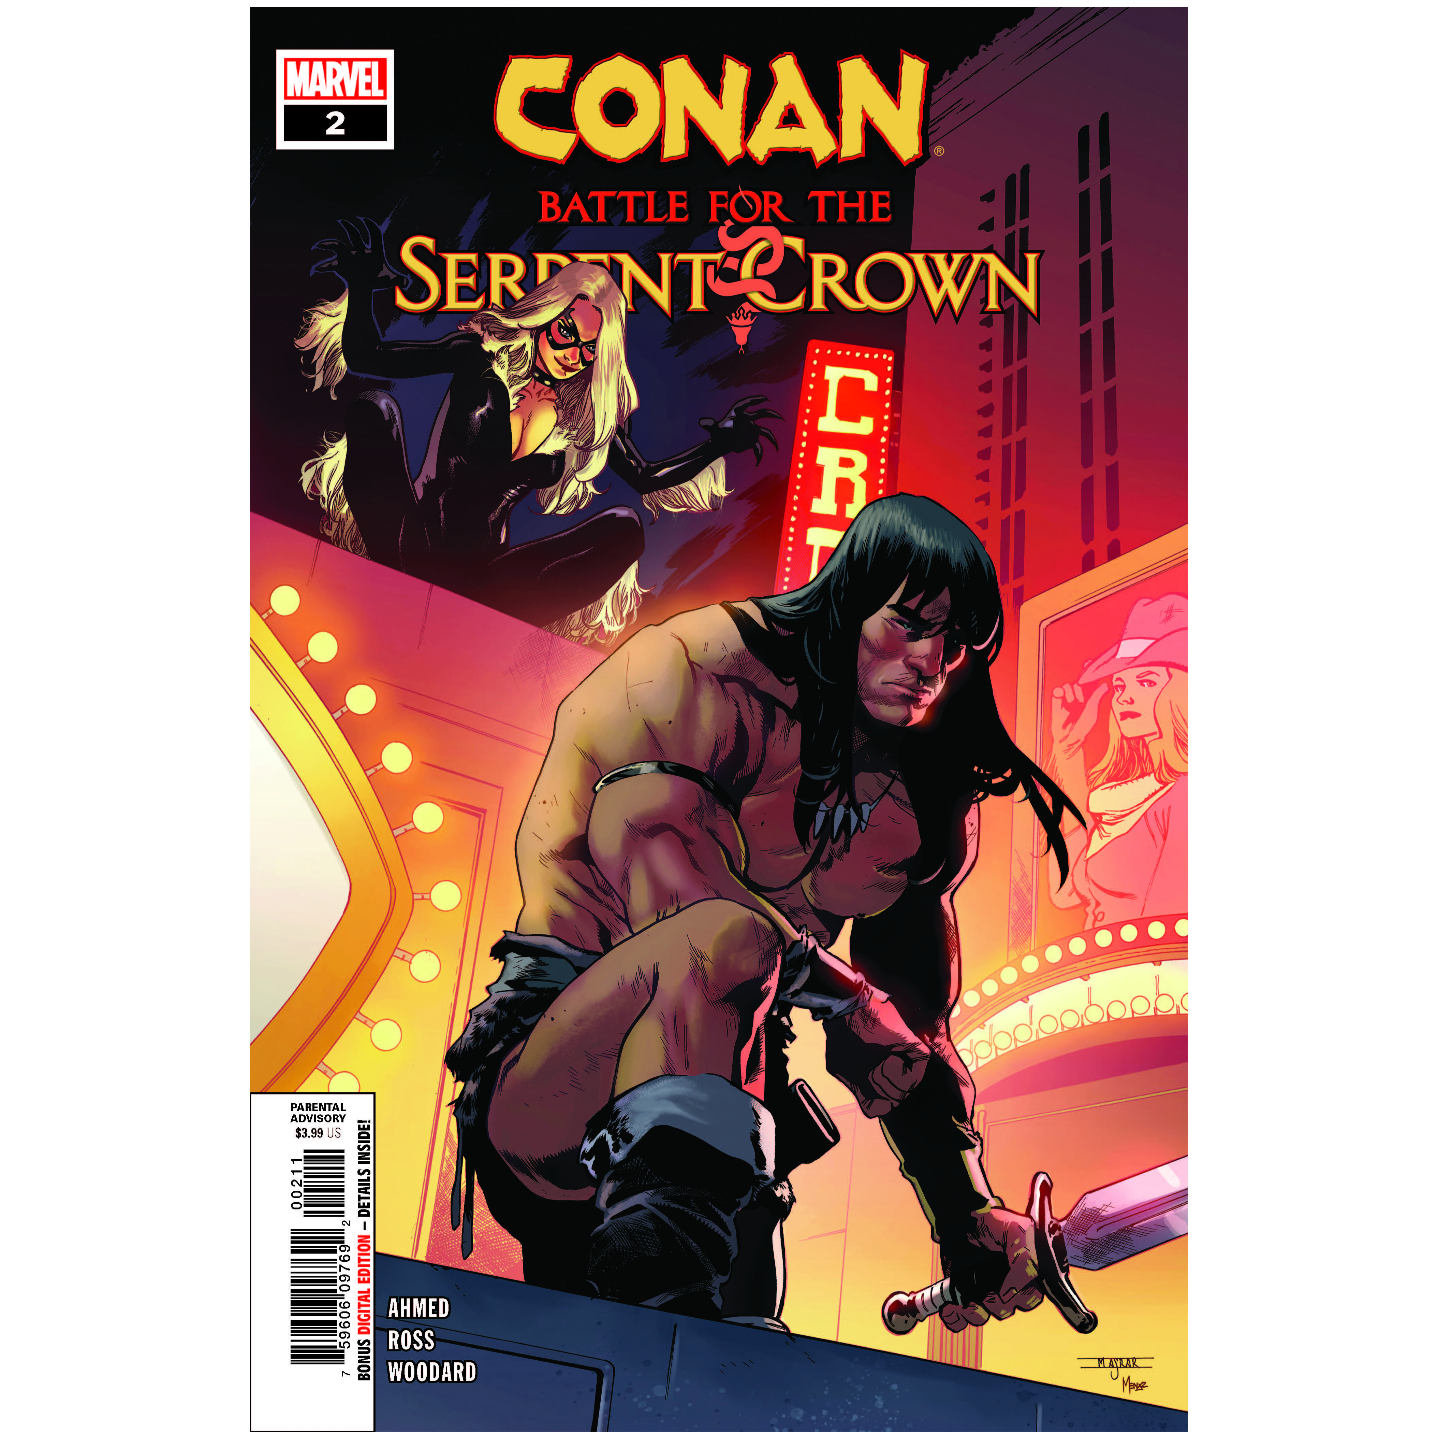 CONAN BATTLE FOR SERPENT CROWN #2 (OF 5)